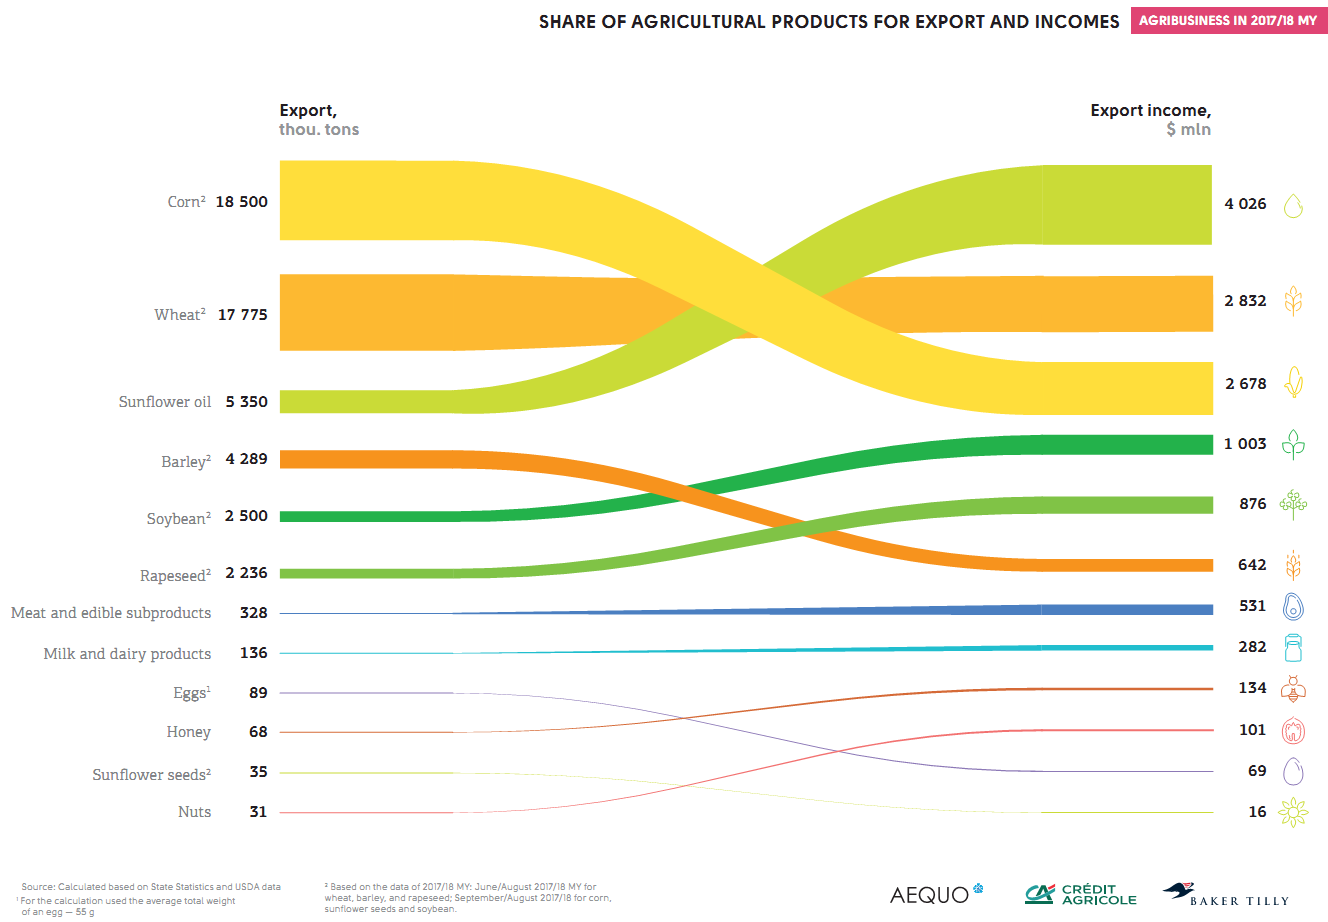 The Ukrainian agricultural export structure and incomes (click for full resolution)